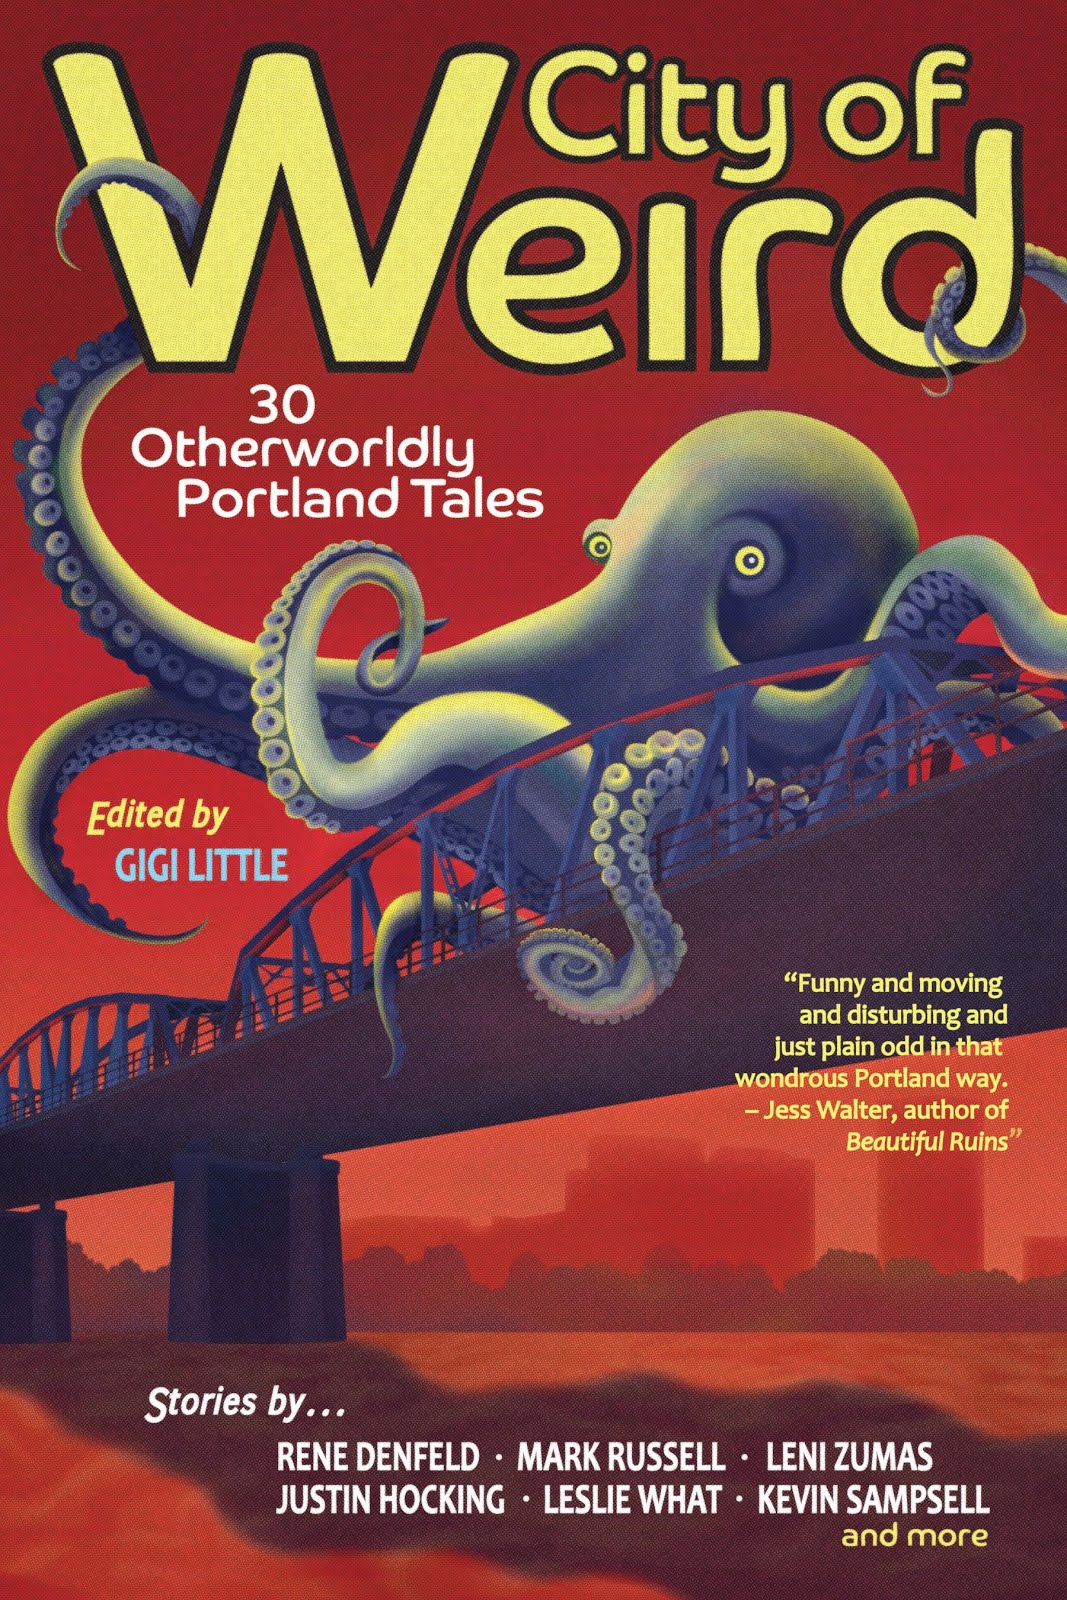 City of Weird